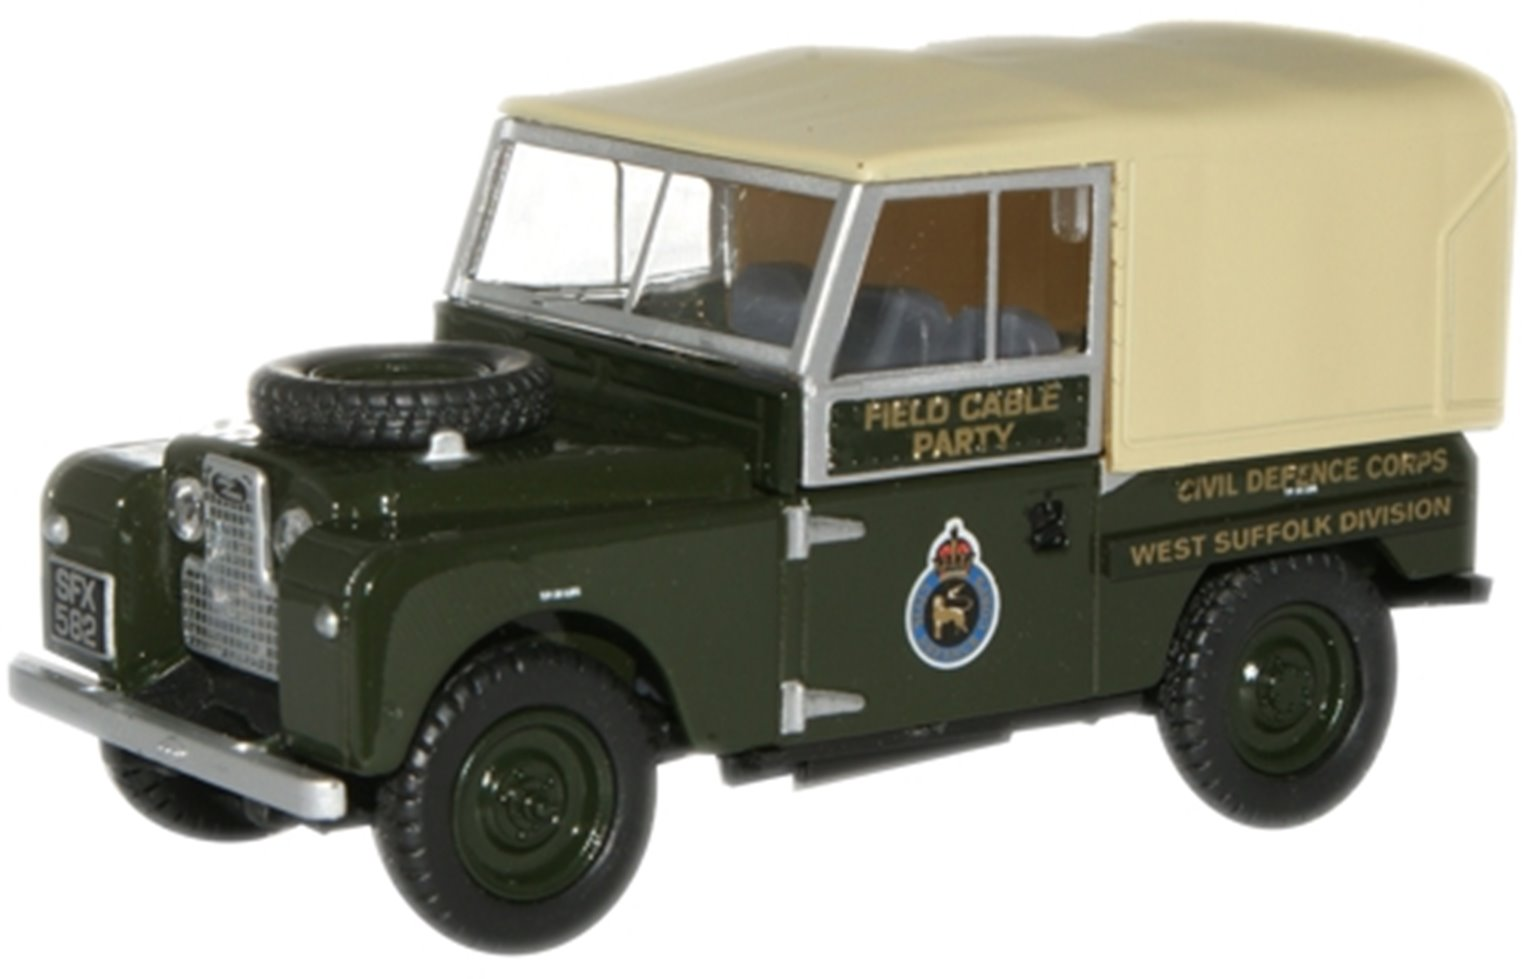 Land Rover Civil Defence Corps